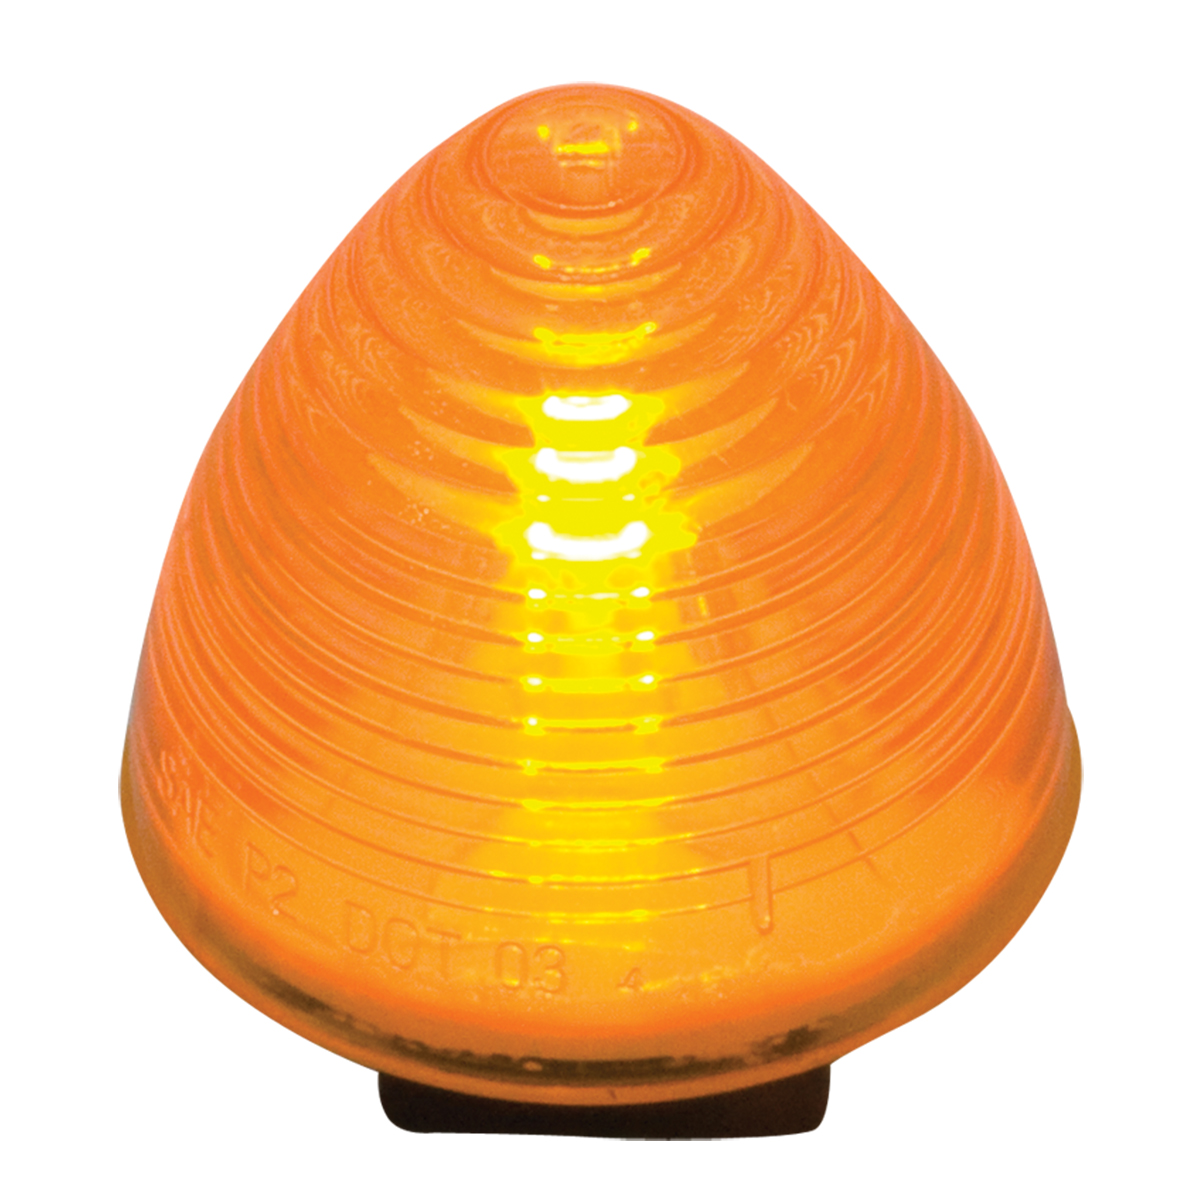 "#80942 2"" Sealed Incandescent Beehive Amber/Amber Light"